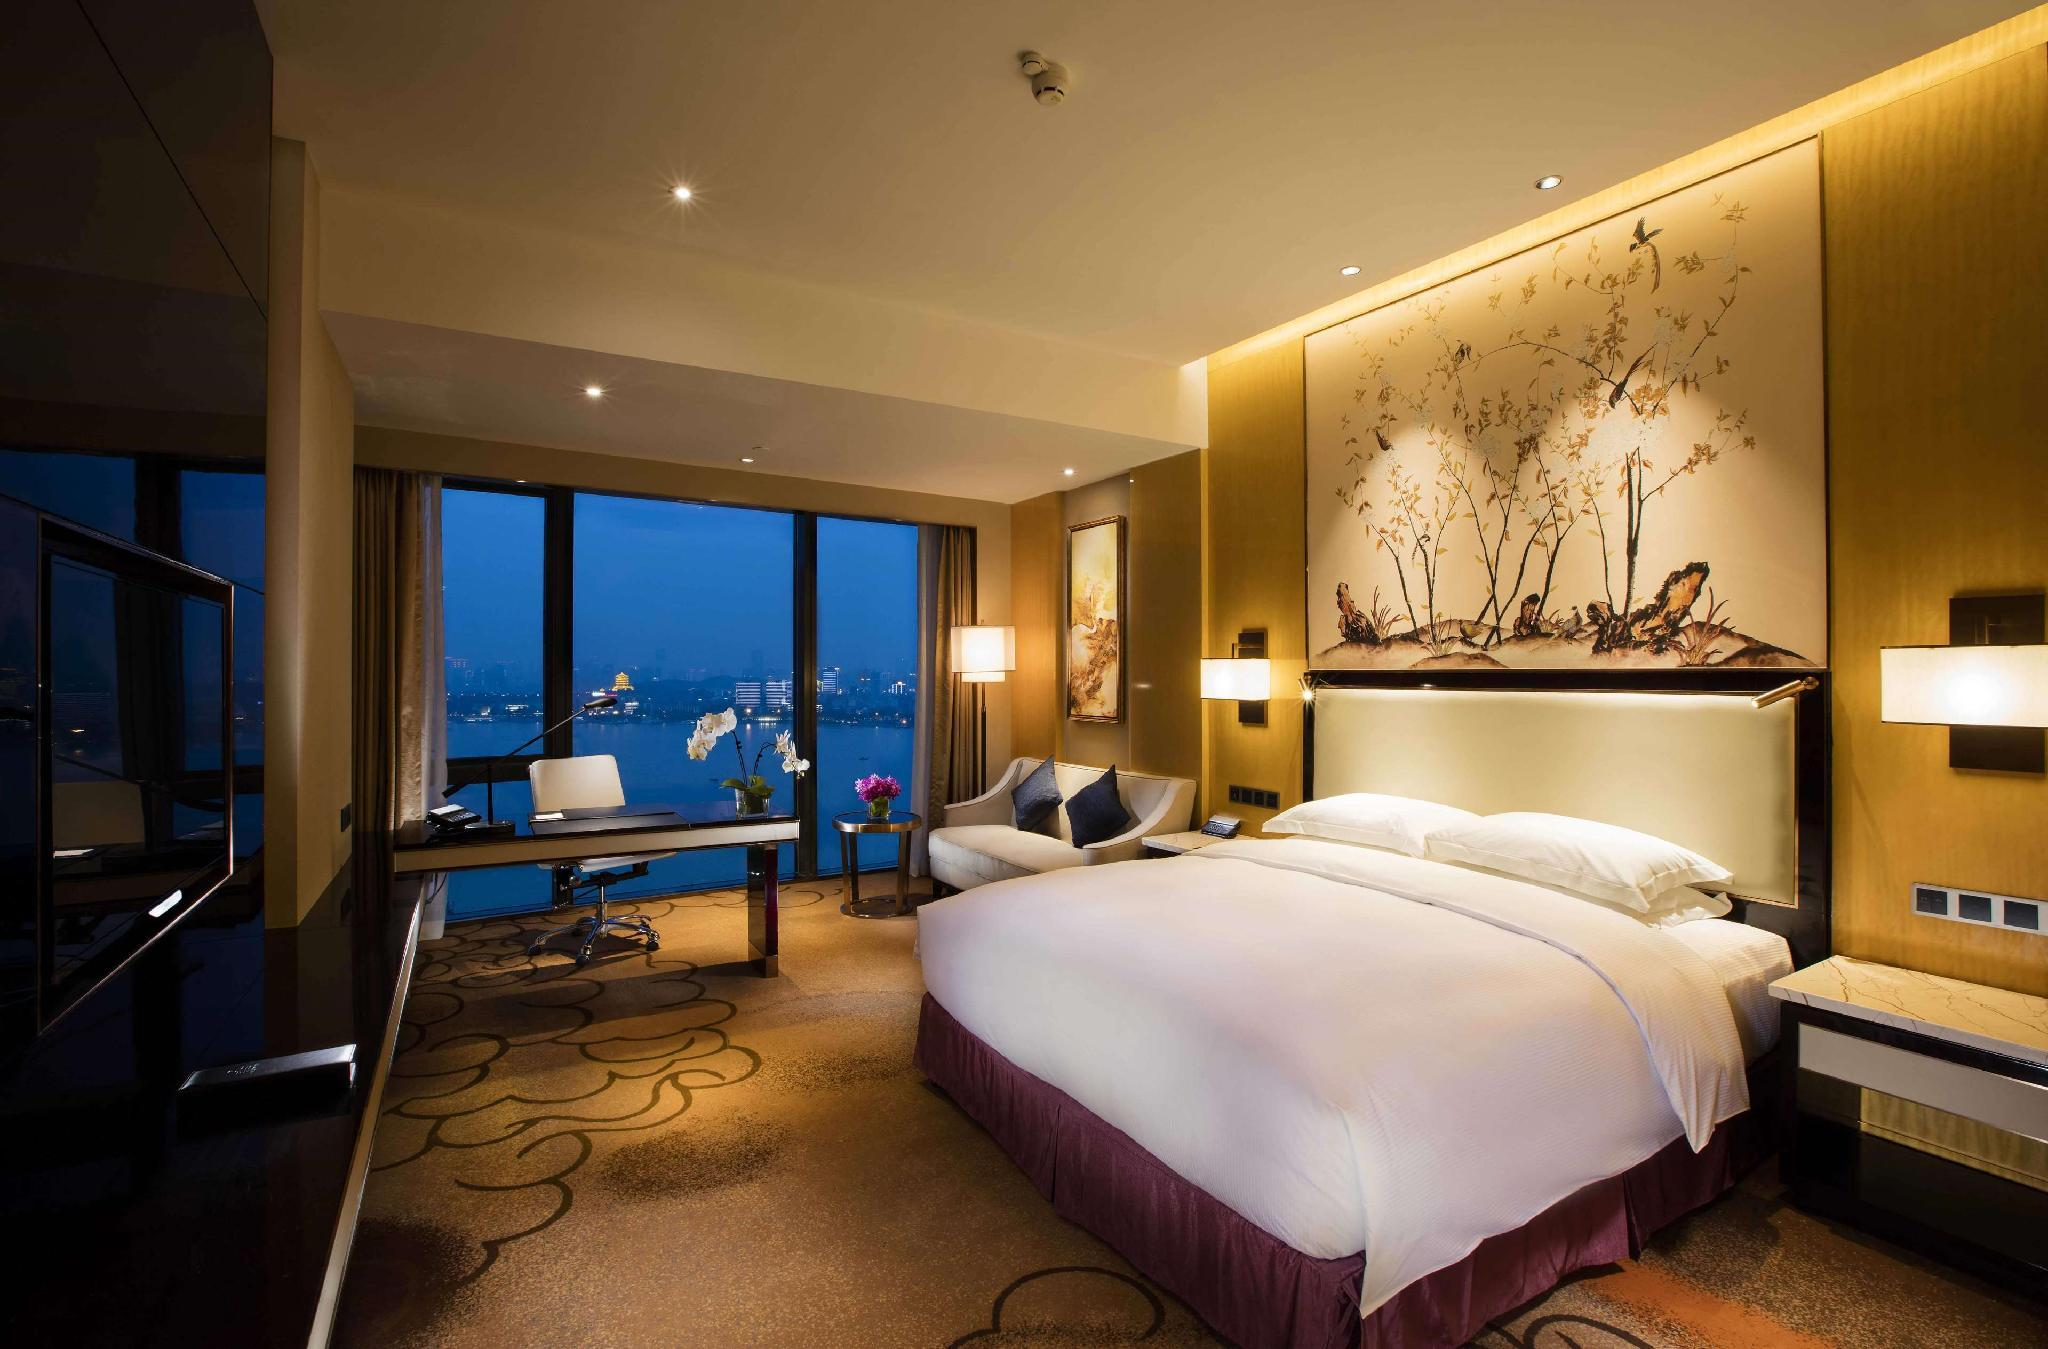 Quarto King Executivo (King Executive Room)